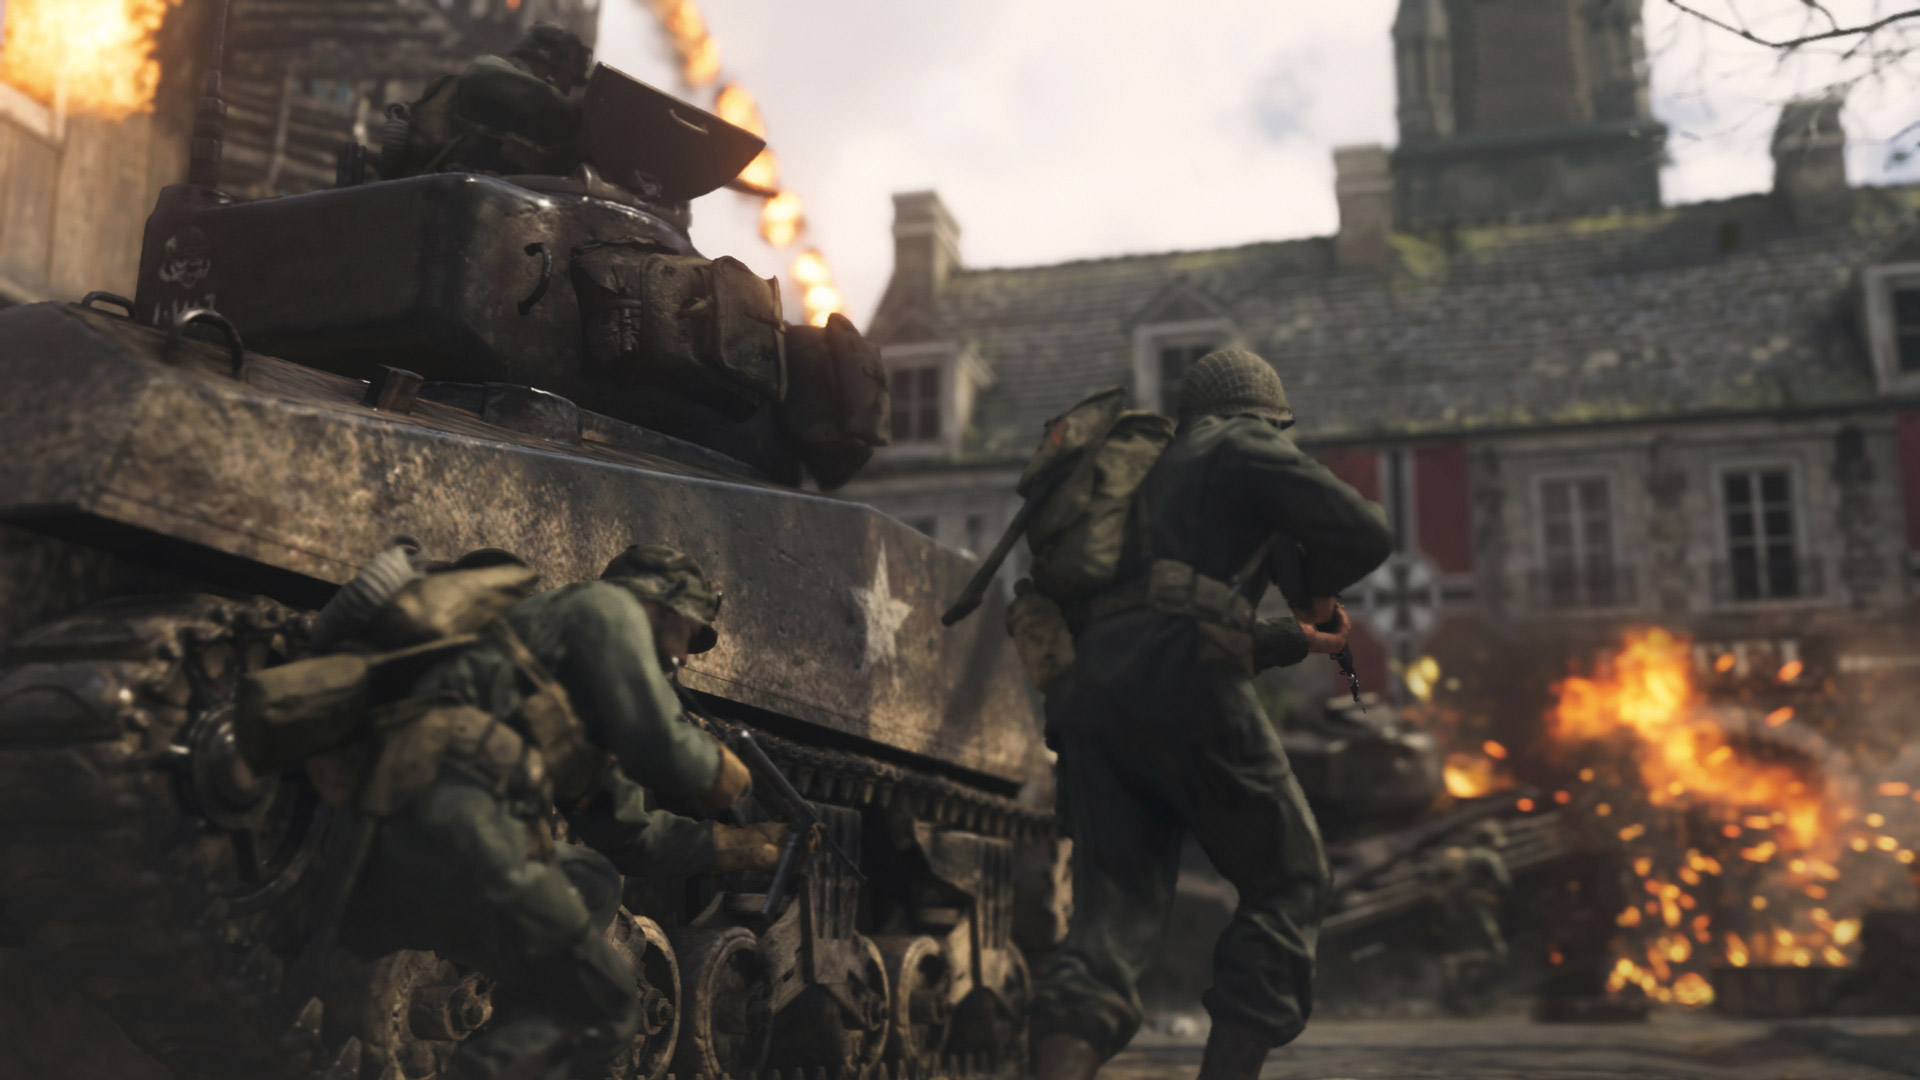 Call of Duty argument may have led to fatal swatting incident